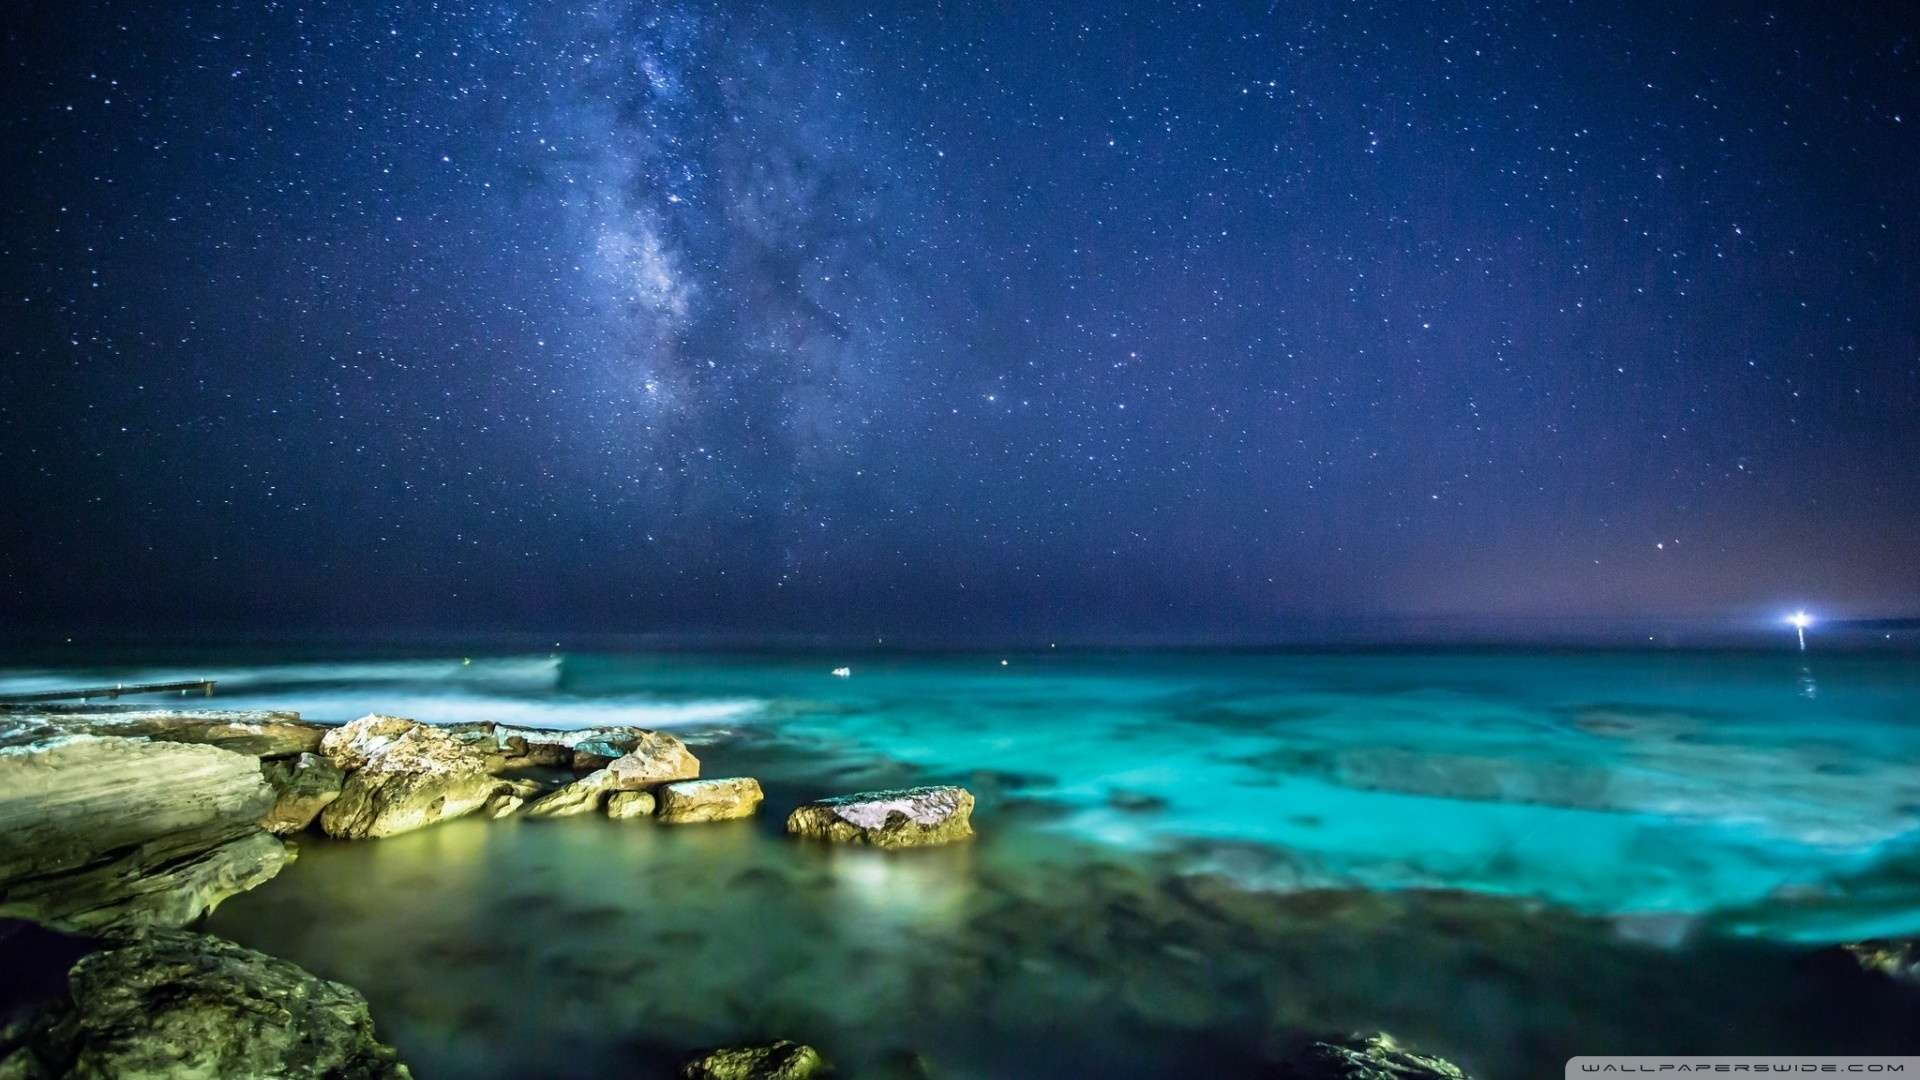 1920x1080 Wallpaper: Ocean Night Sky Wallpaper 1080p HD. Upload at February 16 .